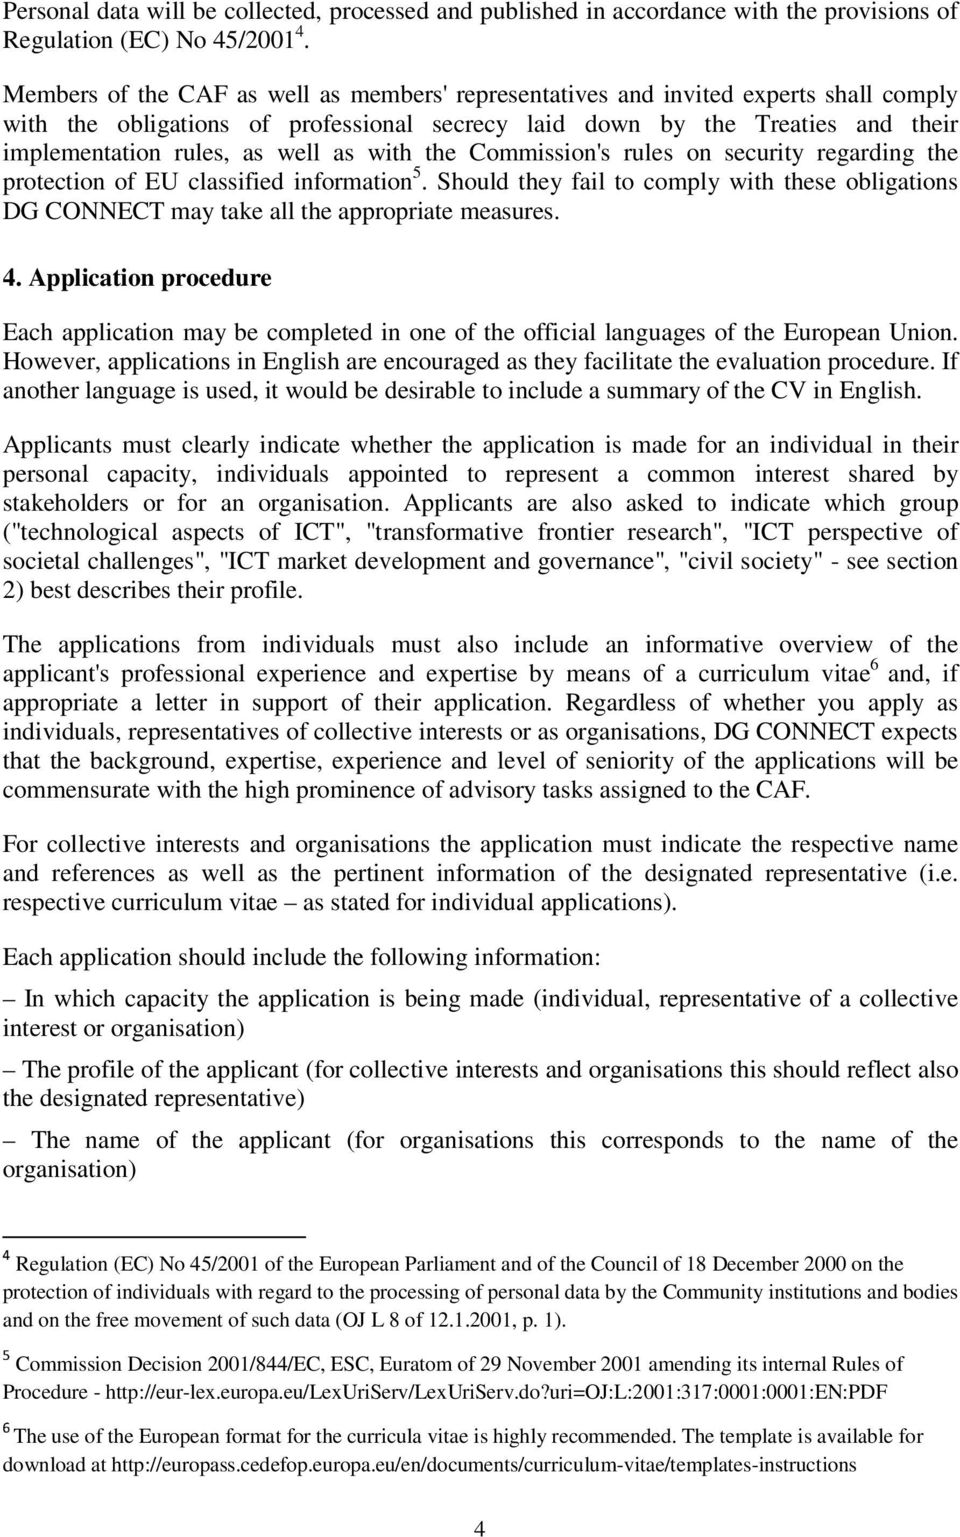 as with the Commission's rules on security regarding the protection of EU classified information 5. Should they fail to comply with these obligations DG CONNECT may take all the appropriate measures.